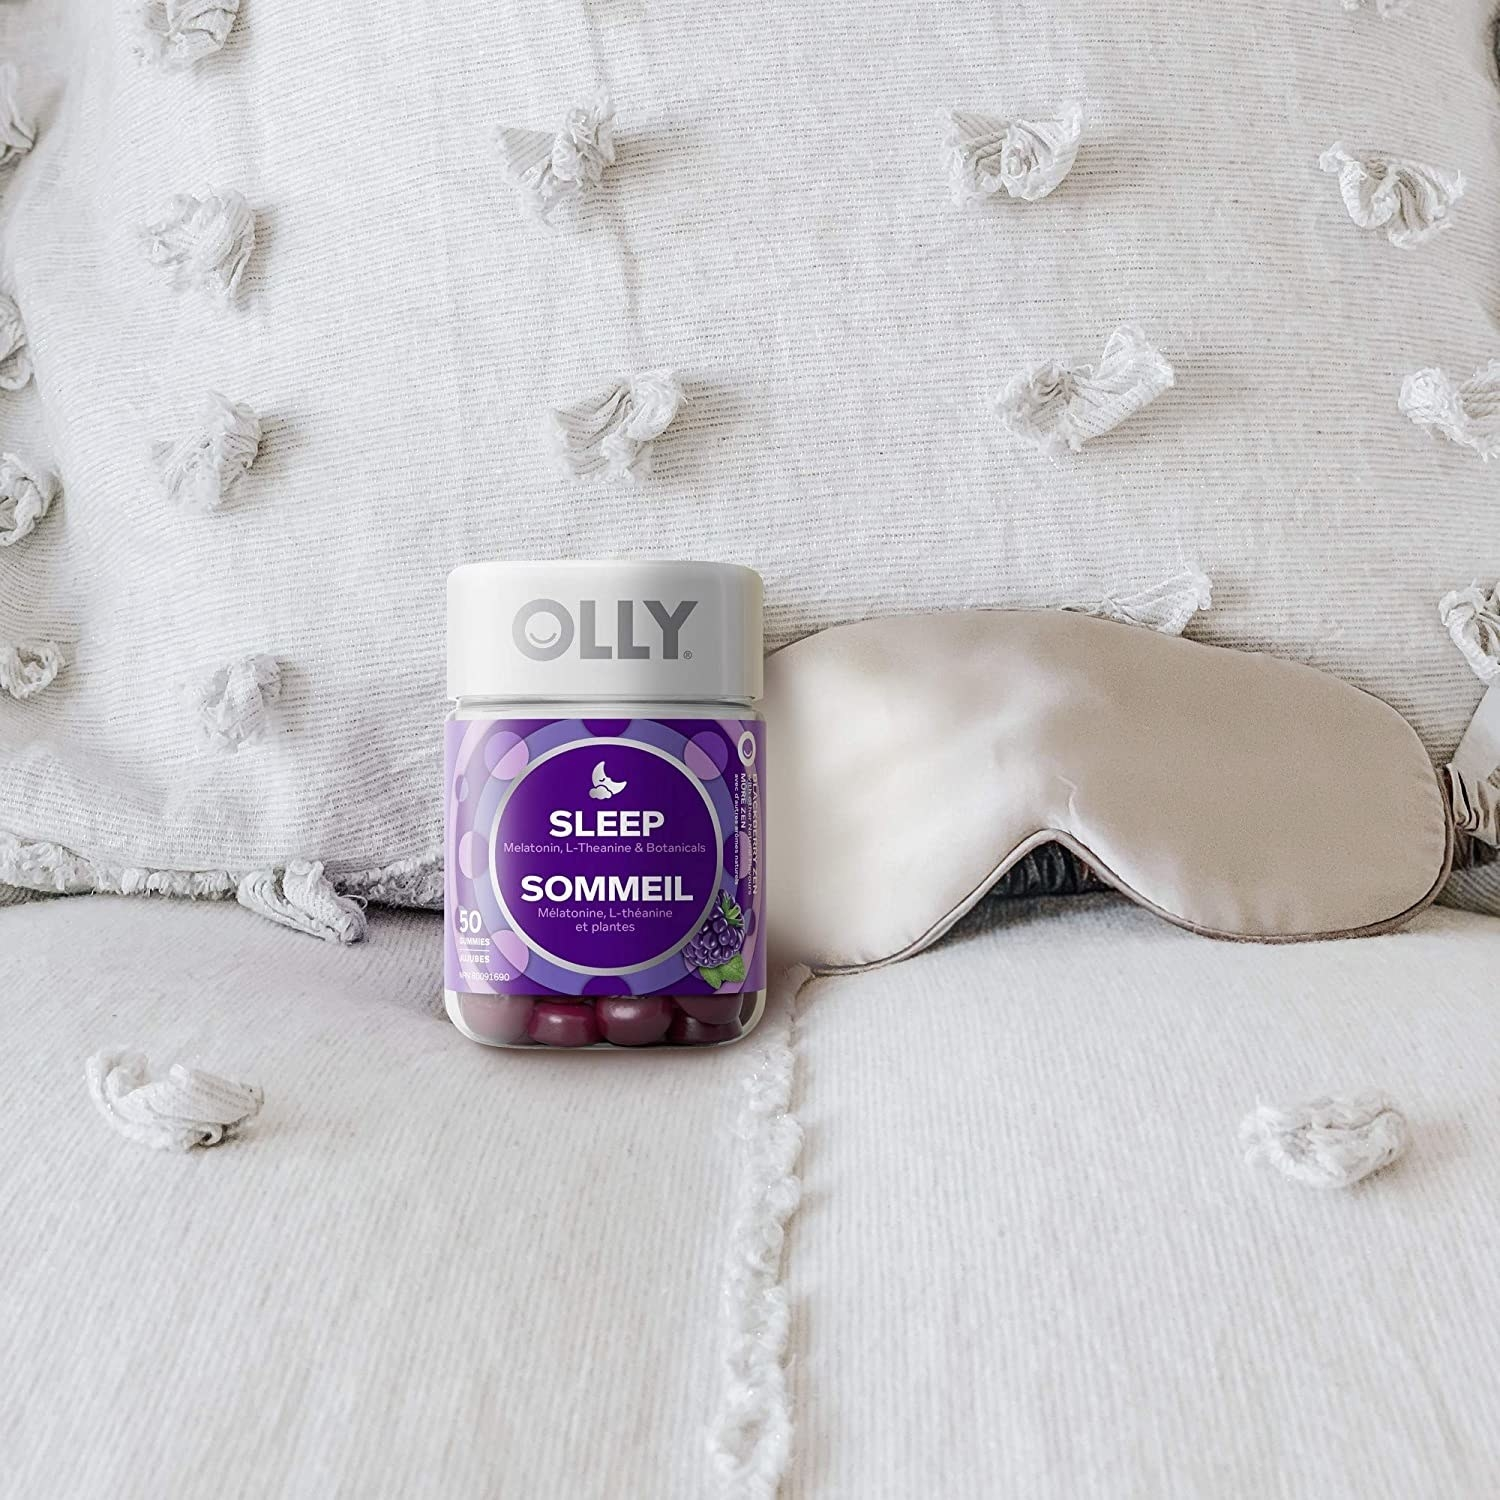 a pack of the vitamins on a bed next to a sleeping mask